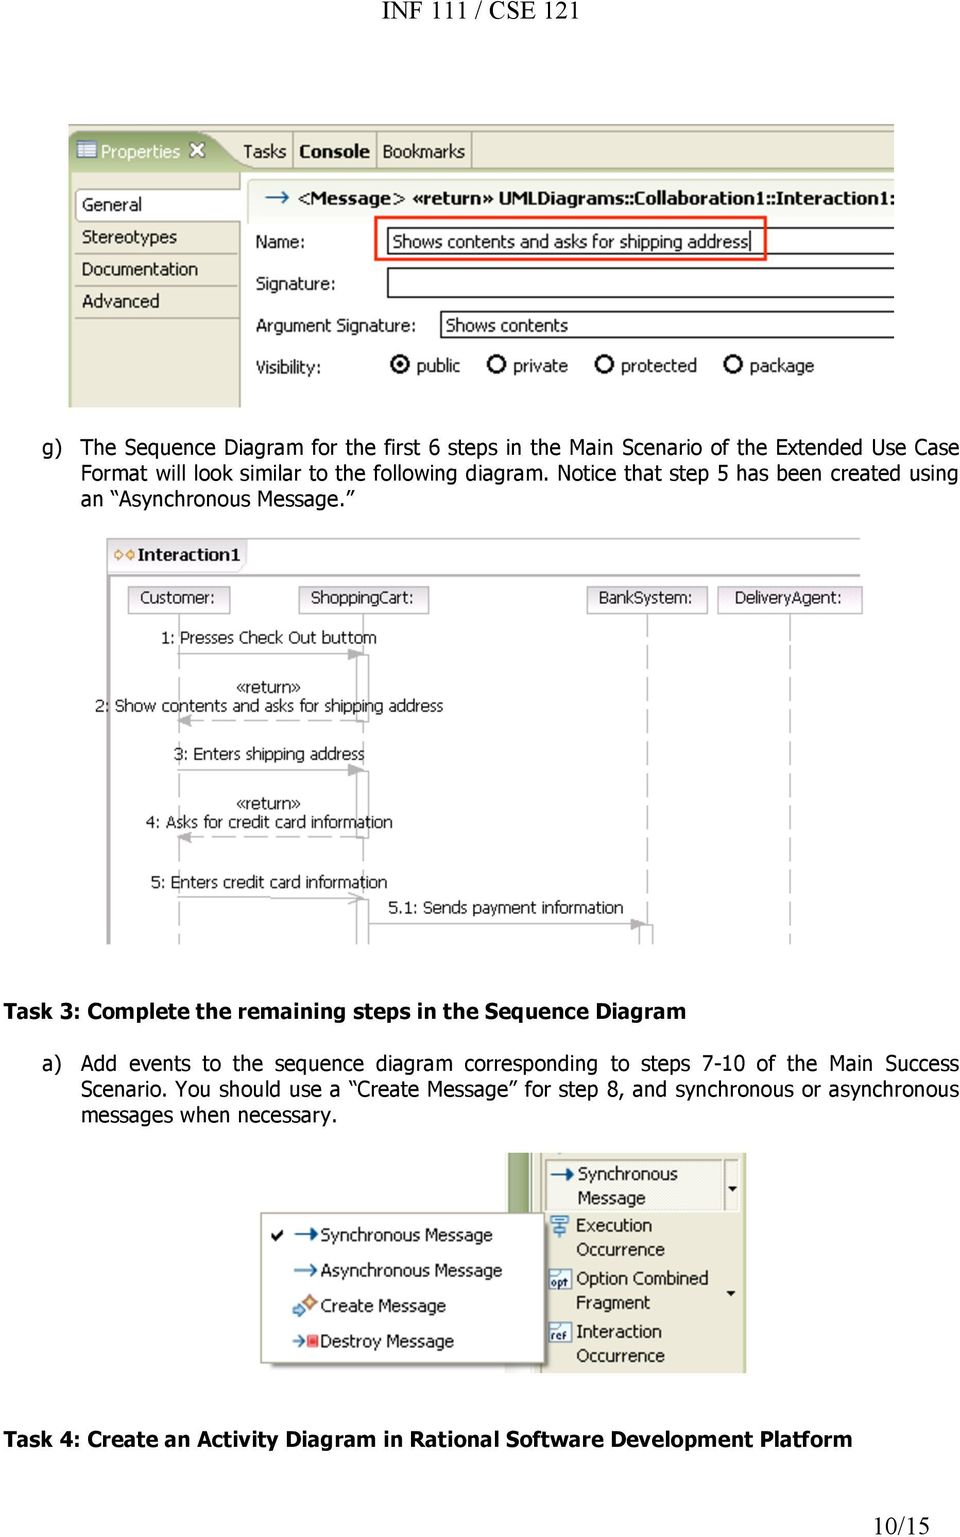 medium resolution of task 3 complete the remaining steps in the sequence diagram a add events to